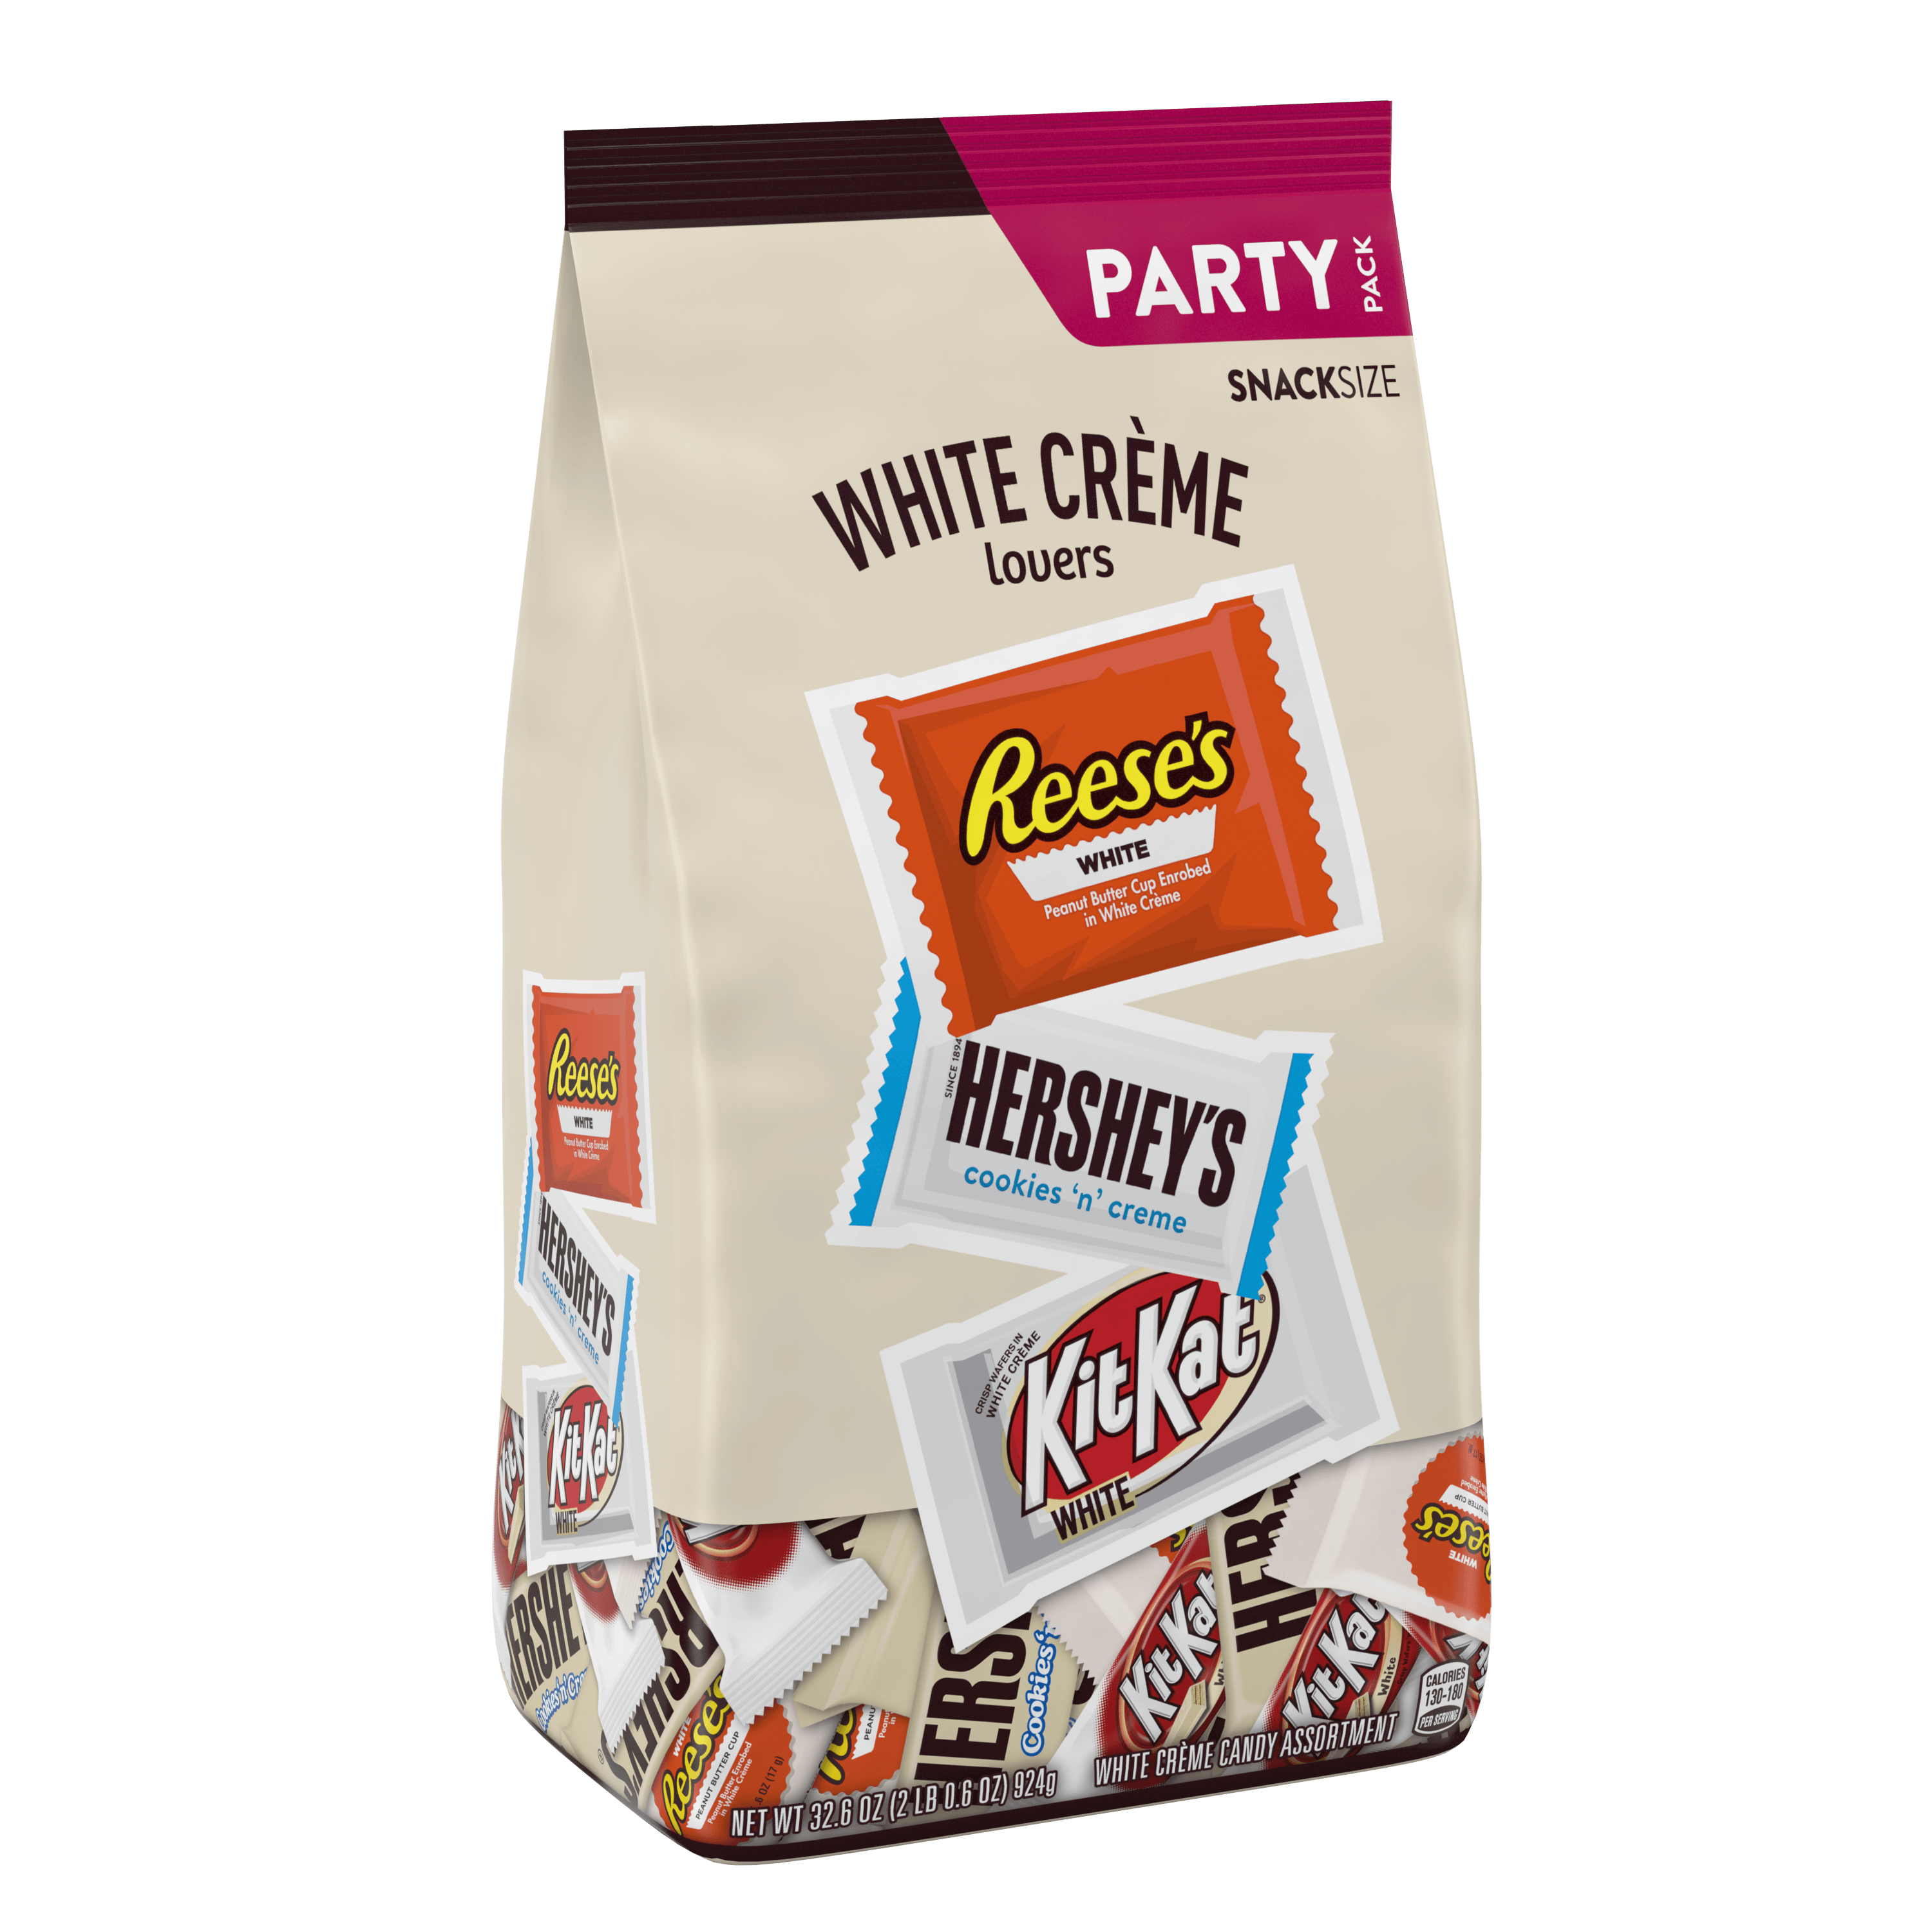 HERSHEY'S, REESE'S & KIT KAT, Assorted White Crème Snack Size Candy, Bulk Candy, 32.6 oz, Bag, Approx. 59 Pieces